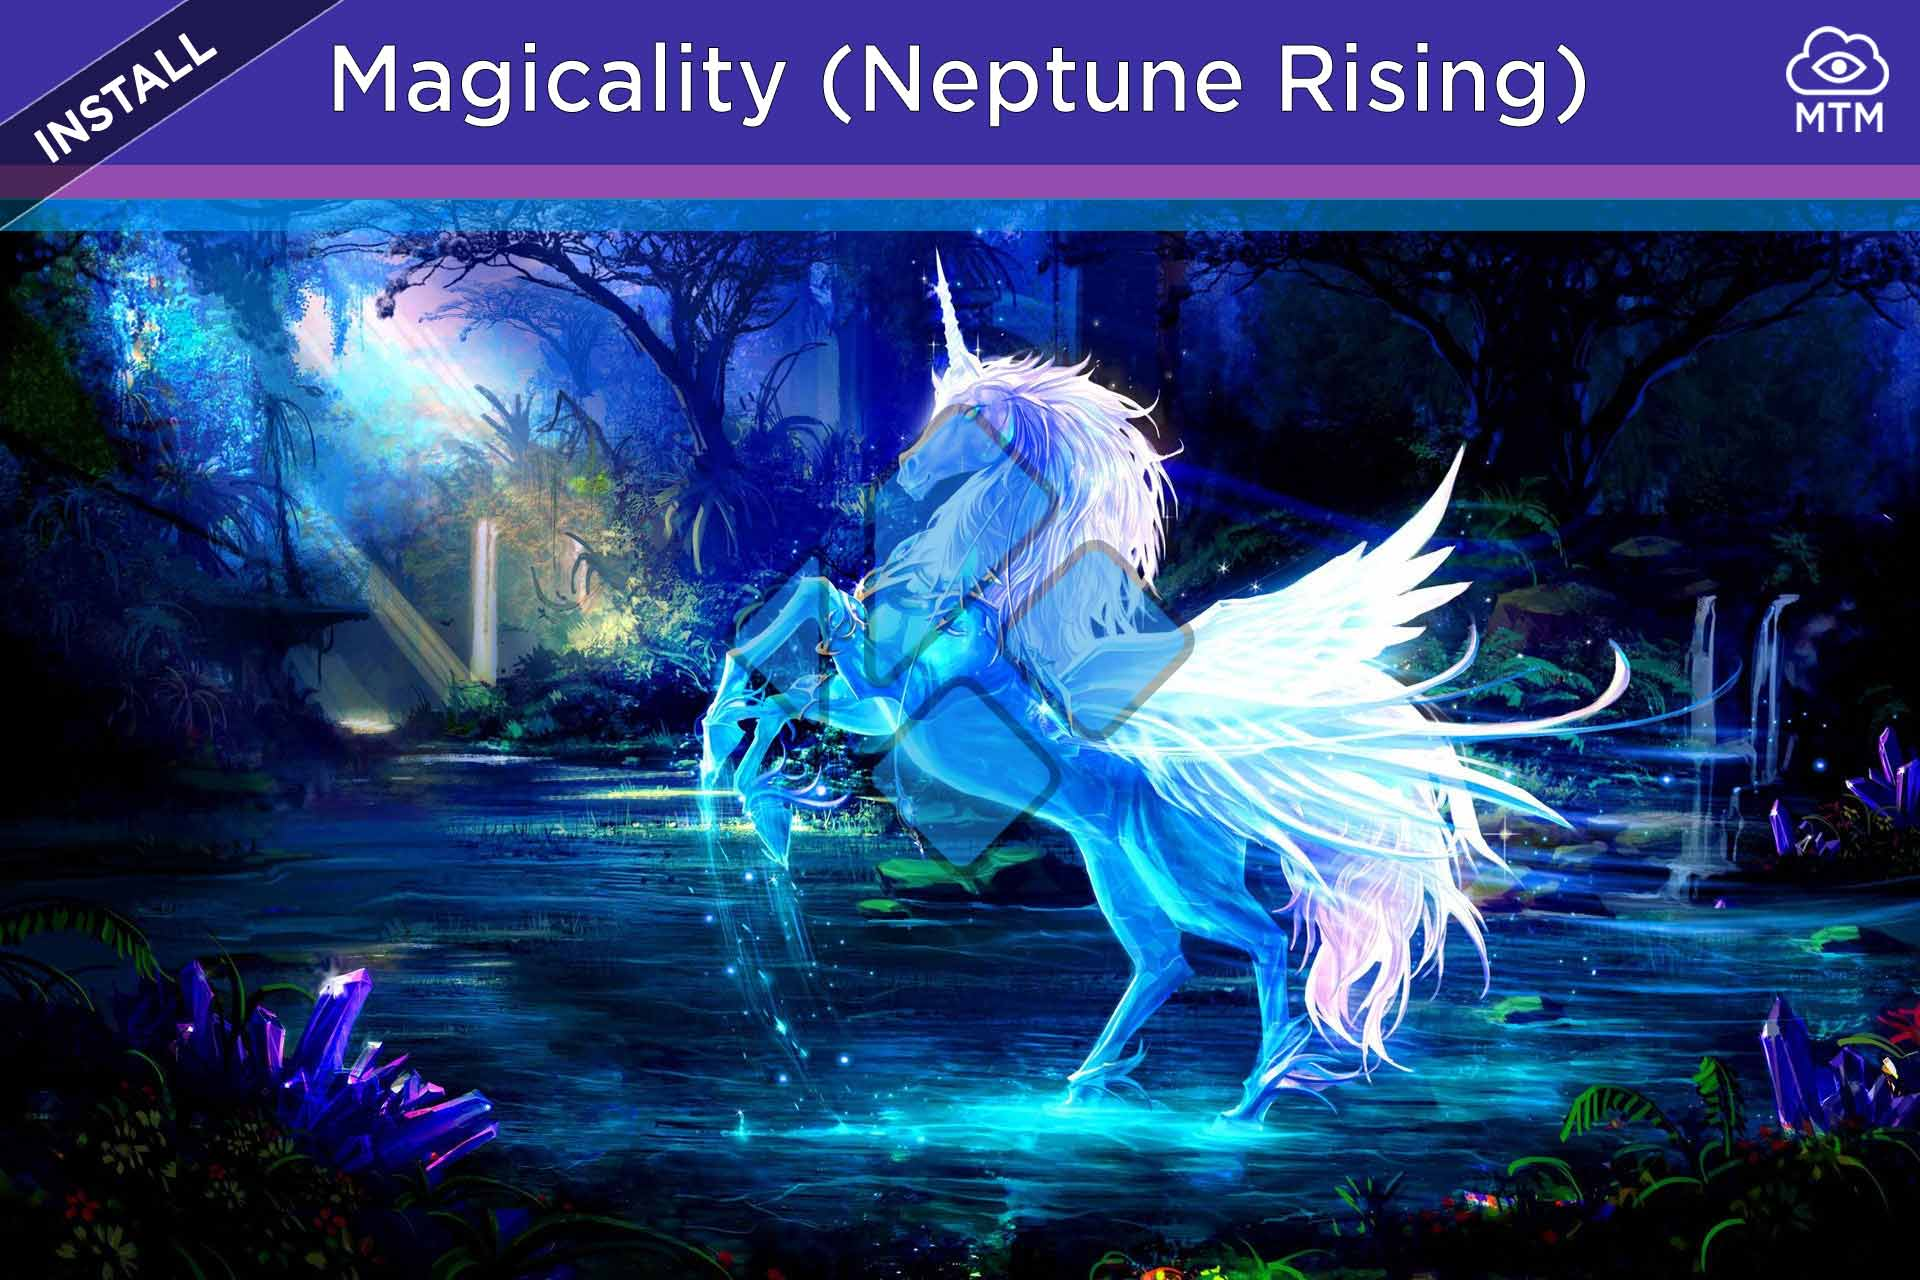 How To Install Magicality Kodi Addon (Neptune Rising